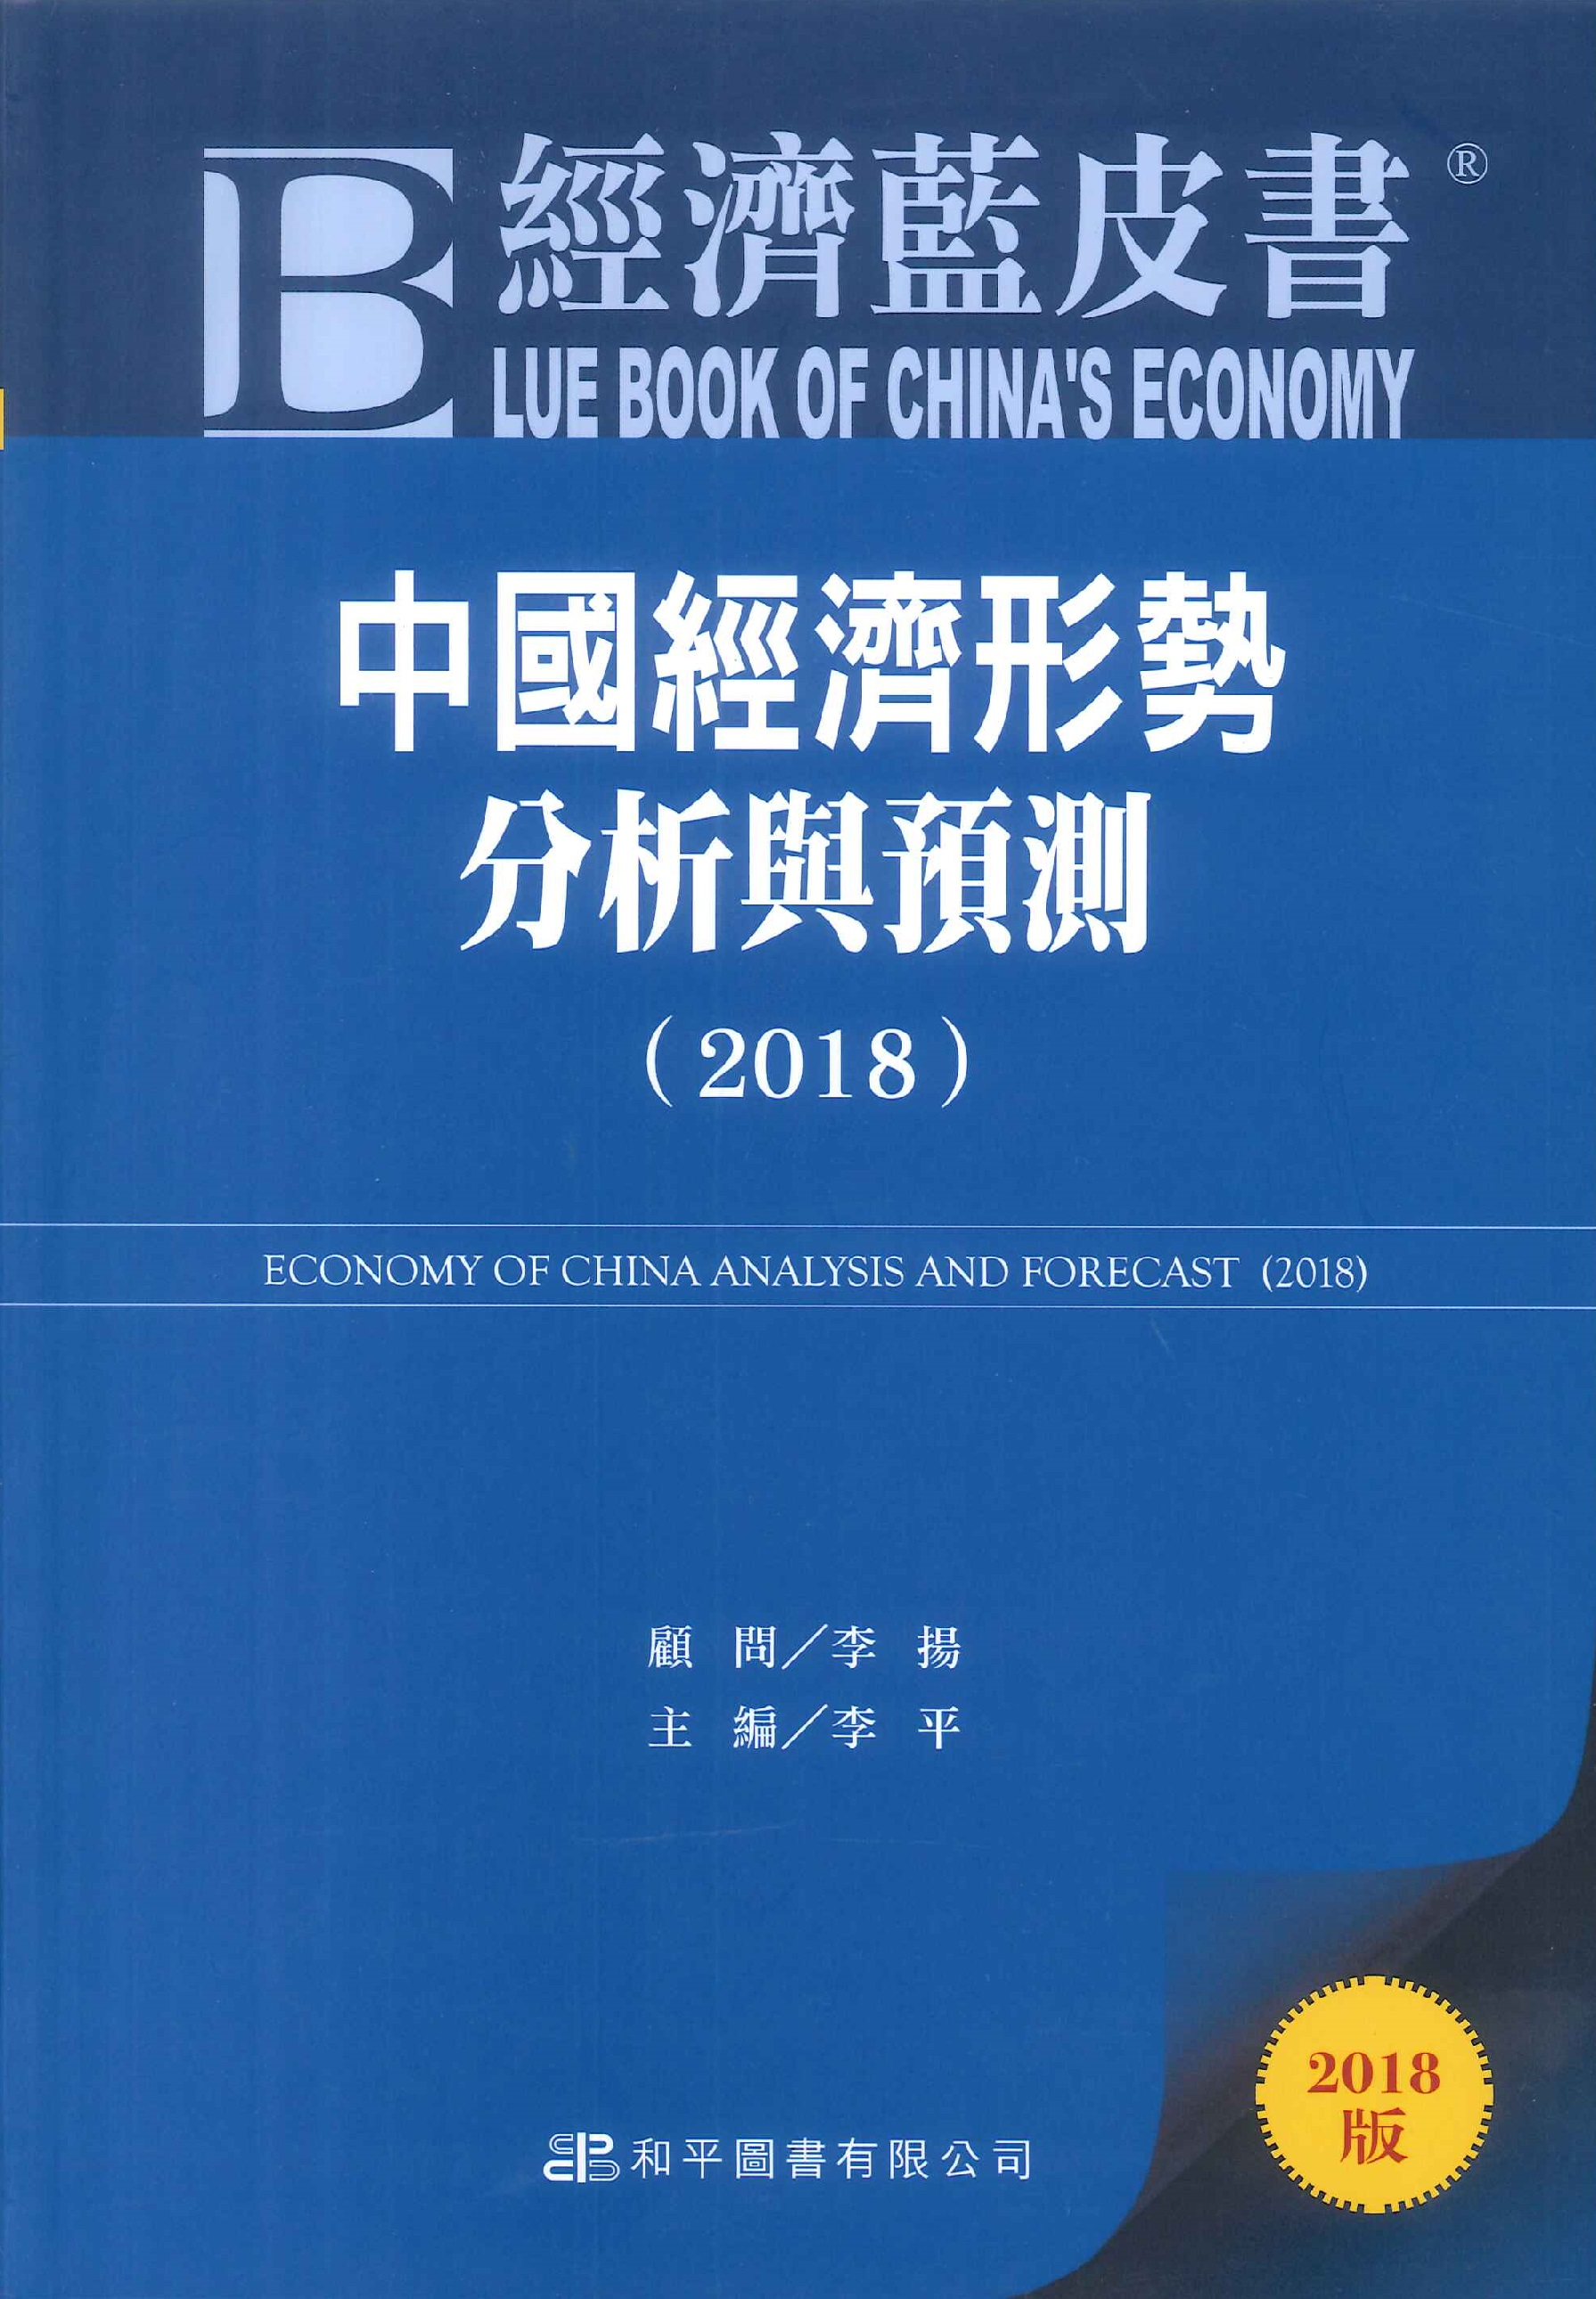 中國經濟形勢分析與預測=Economy of China analysis and forecast